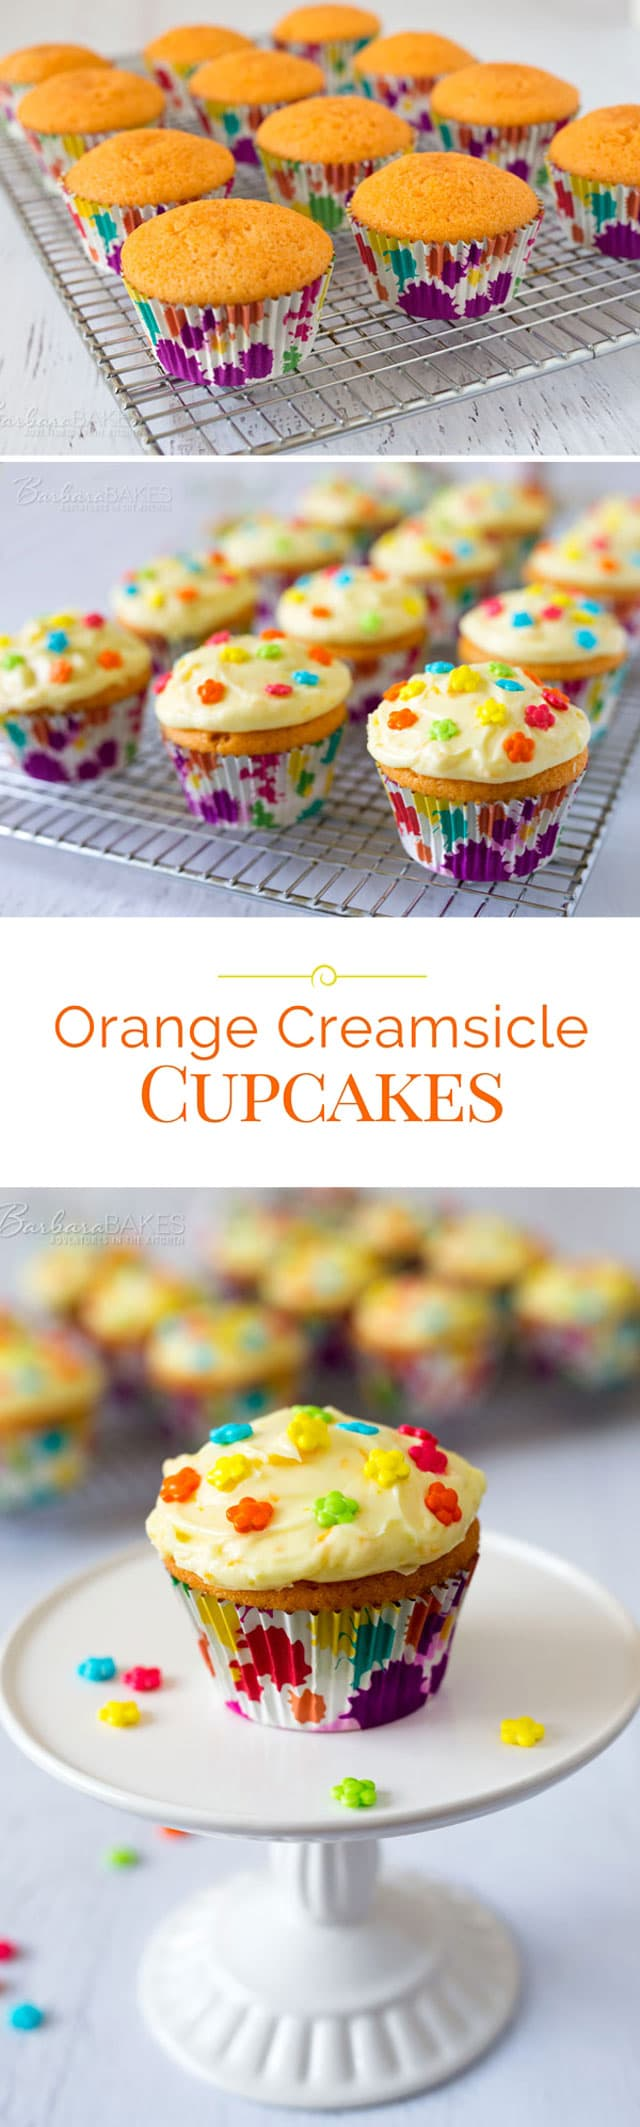 Orange Creamsicle Cupcakes with a fun orange soda cupcake frosted with a luscious, sweet orange cream cheese icing that I LOVED.